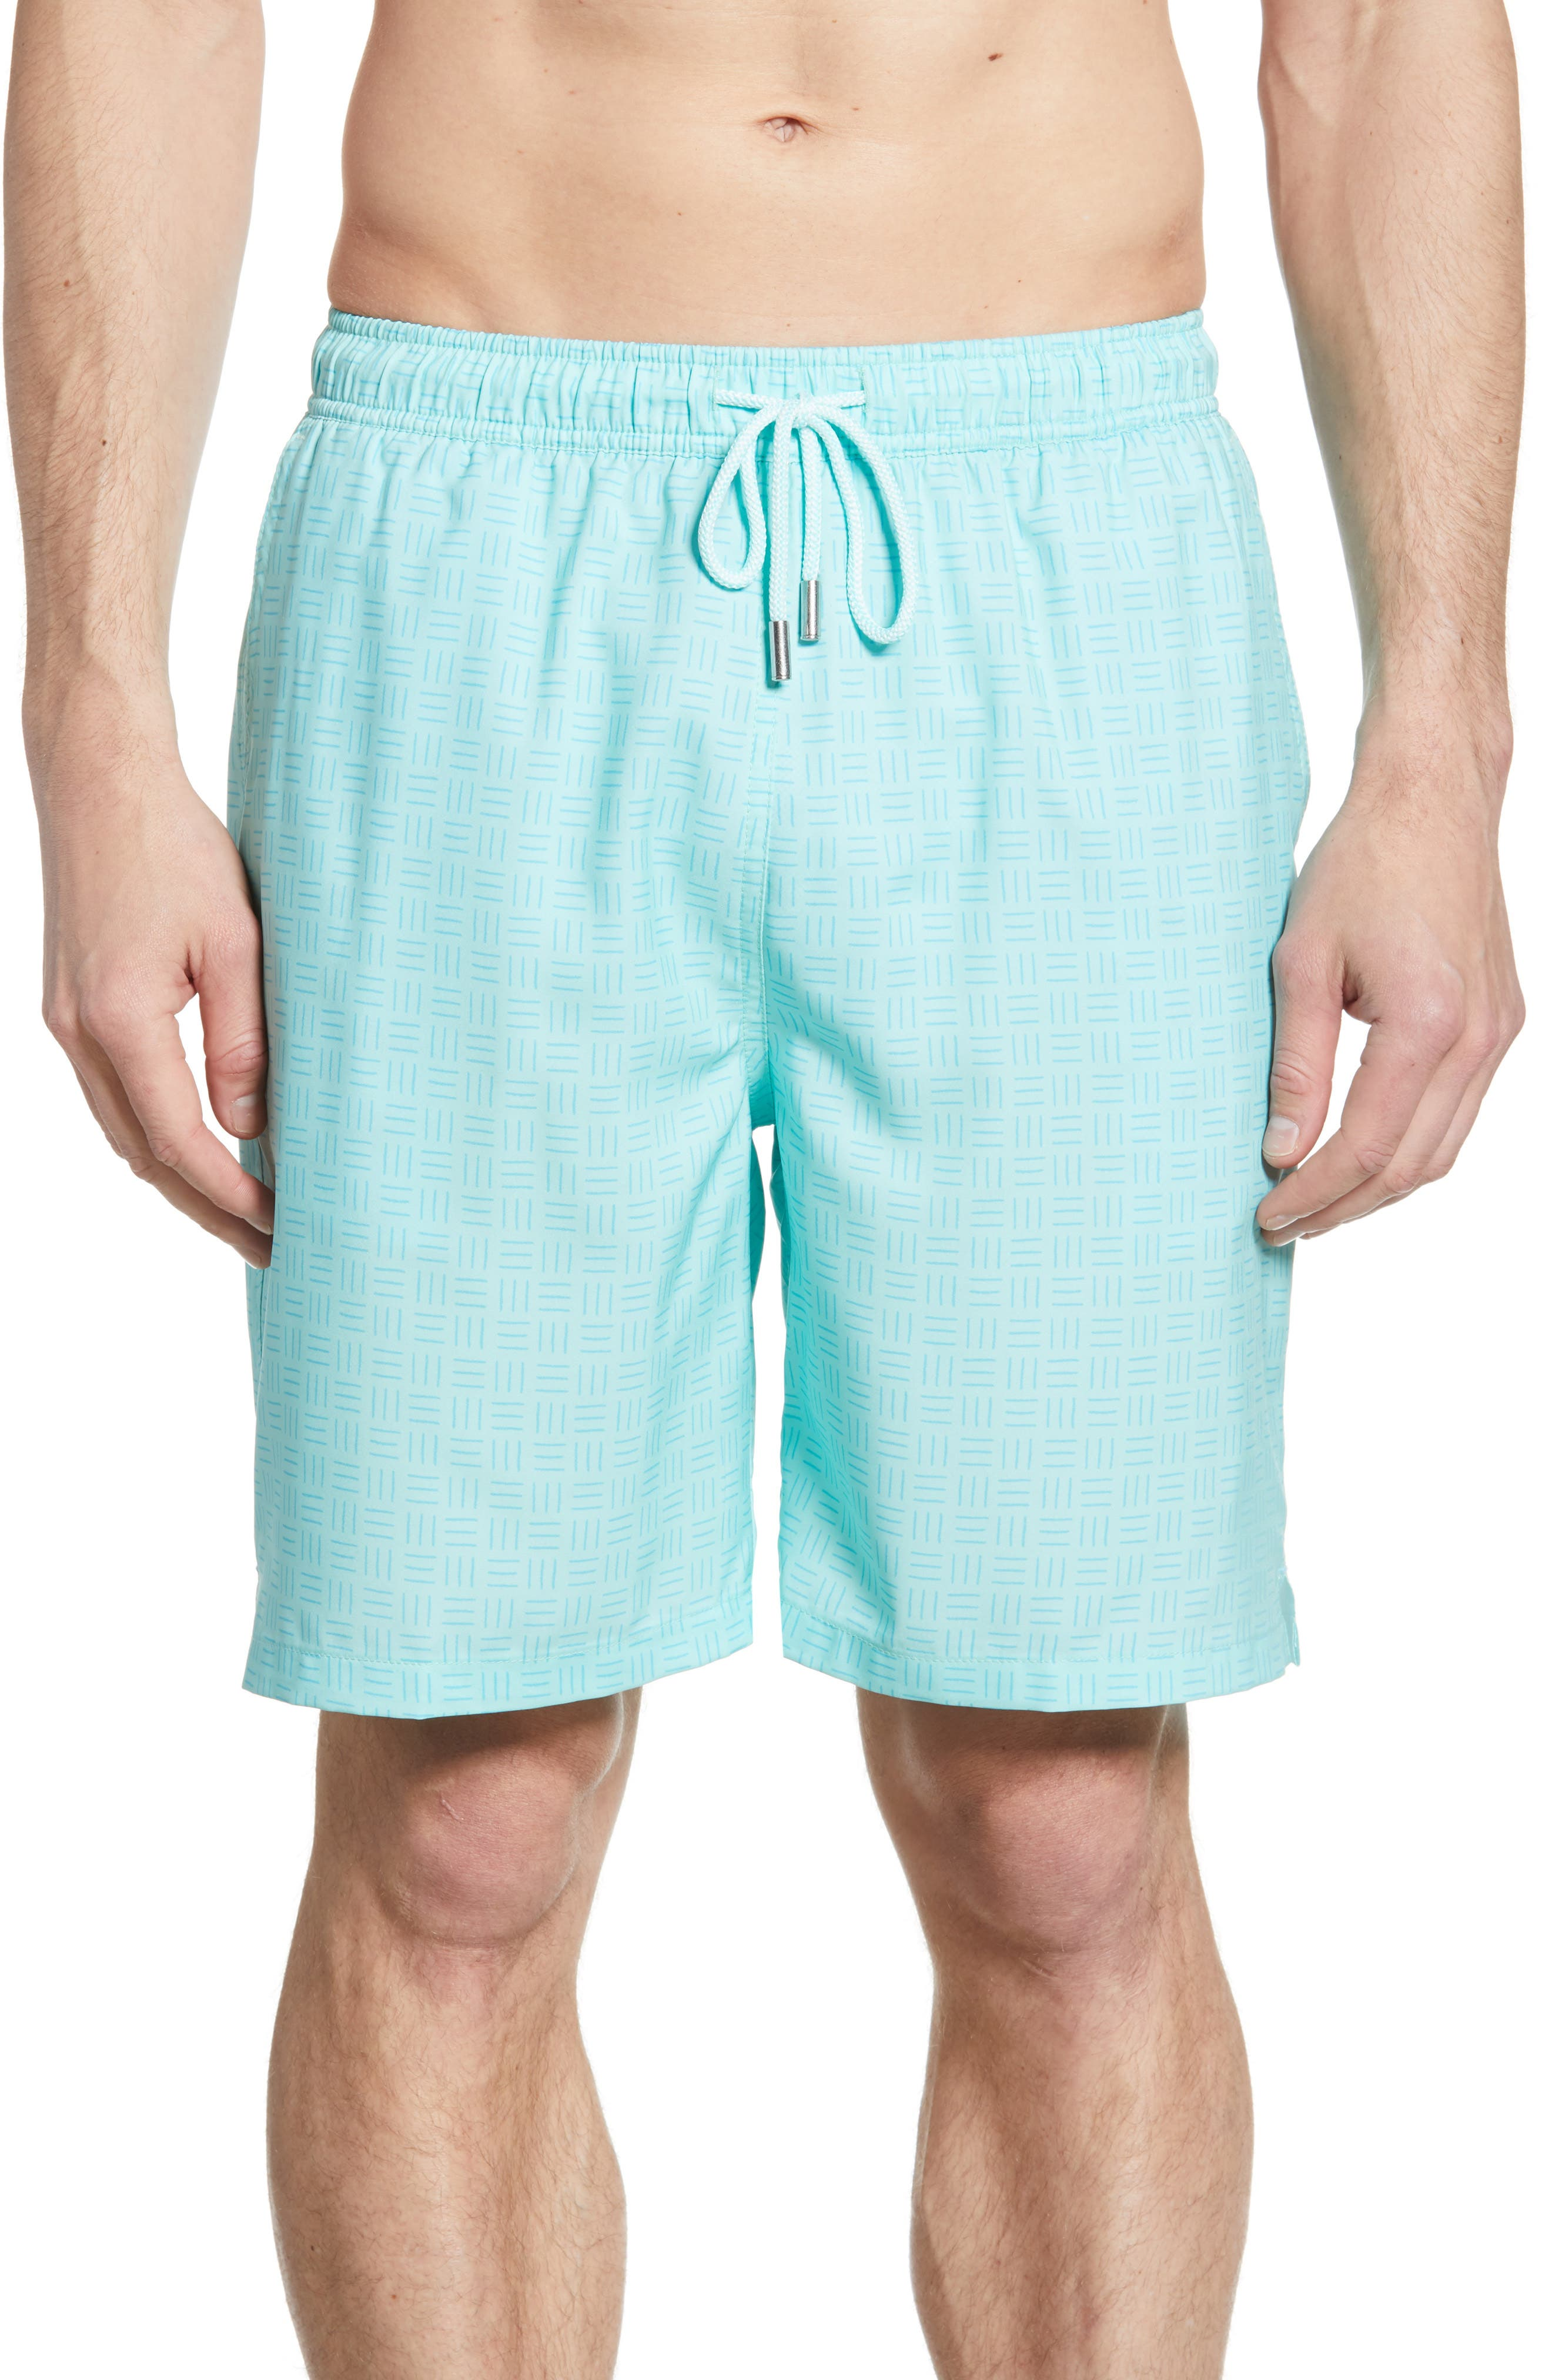 Peter Millar Wilmington Wicker Swim Trunks, Green